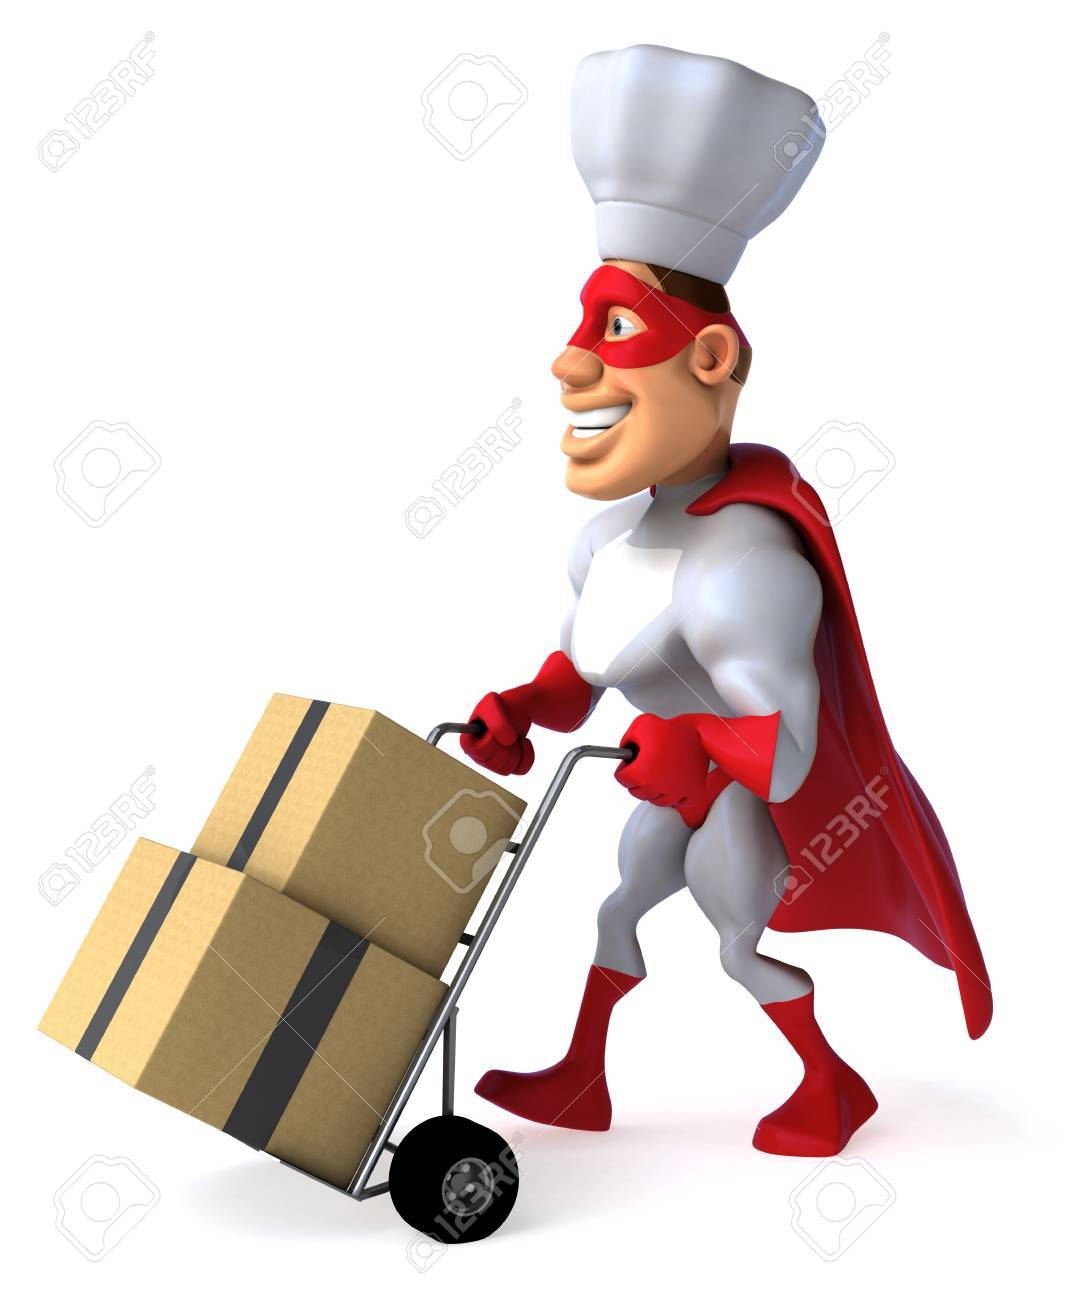 Cartoon Superhero With Chef Hat Pushing A Trolley With Boxes Stock ...